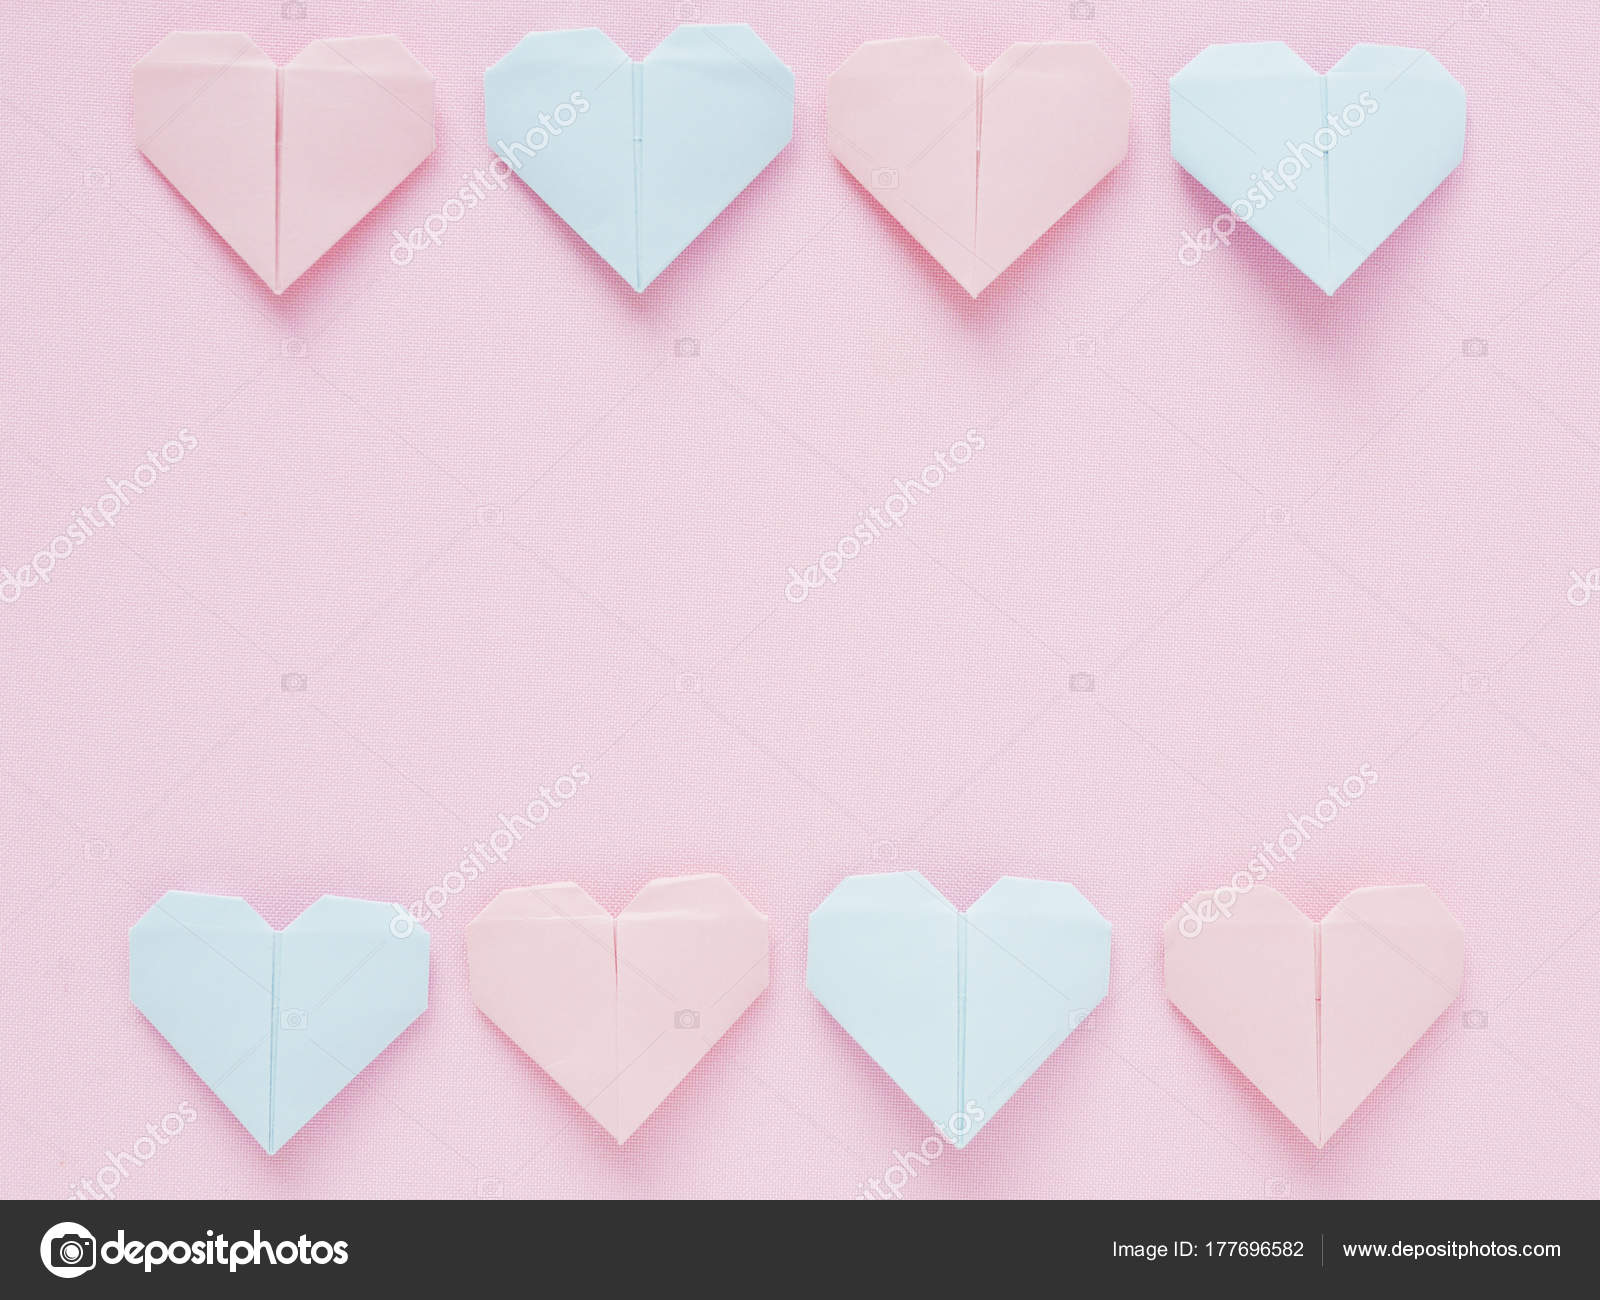 Pattern paper origami hearts pink background stock photo pattern paper origami hearts pink background stock photo jeuxipadfo Gallery